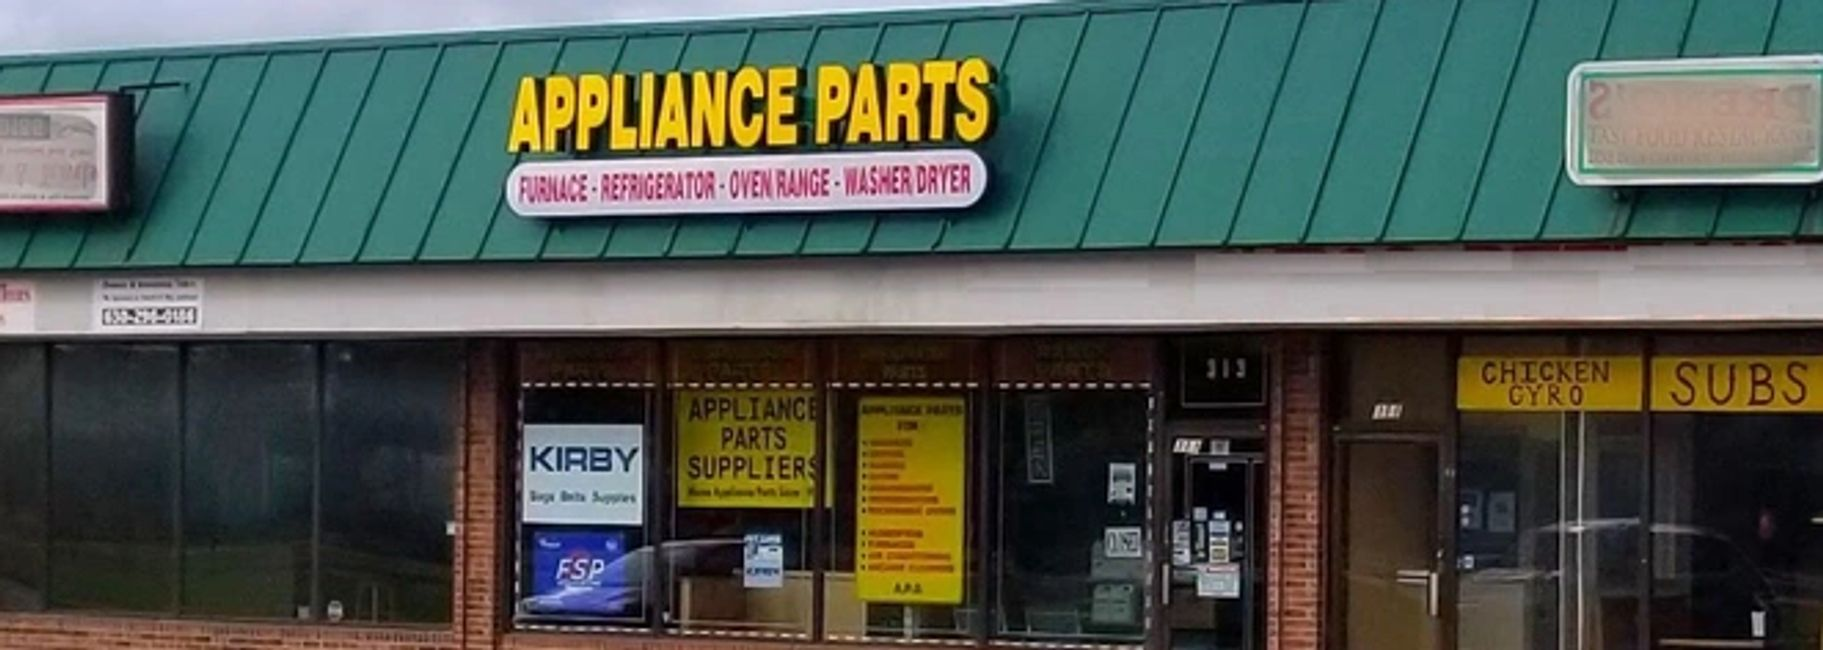 Appliance Parts Suppliers picture